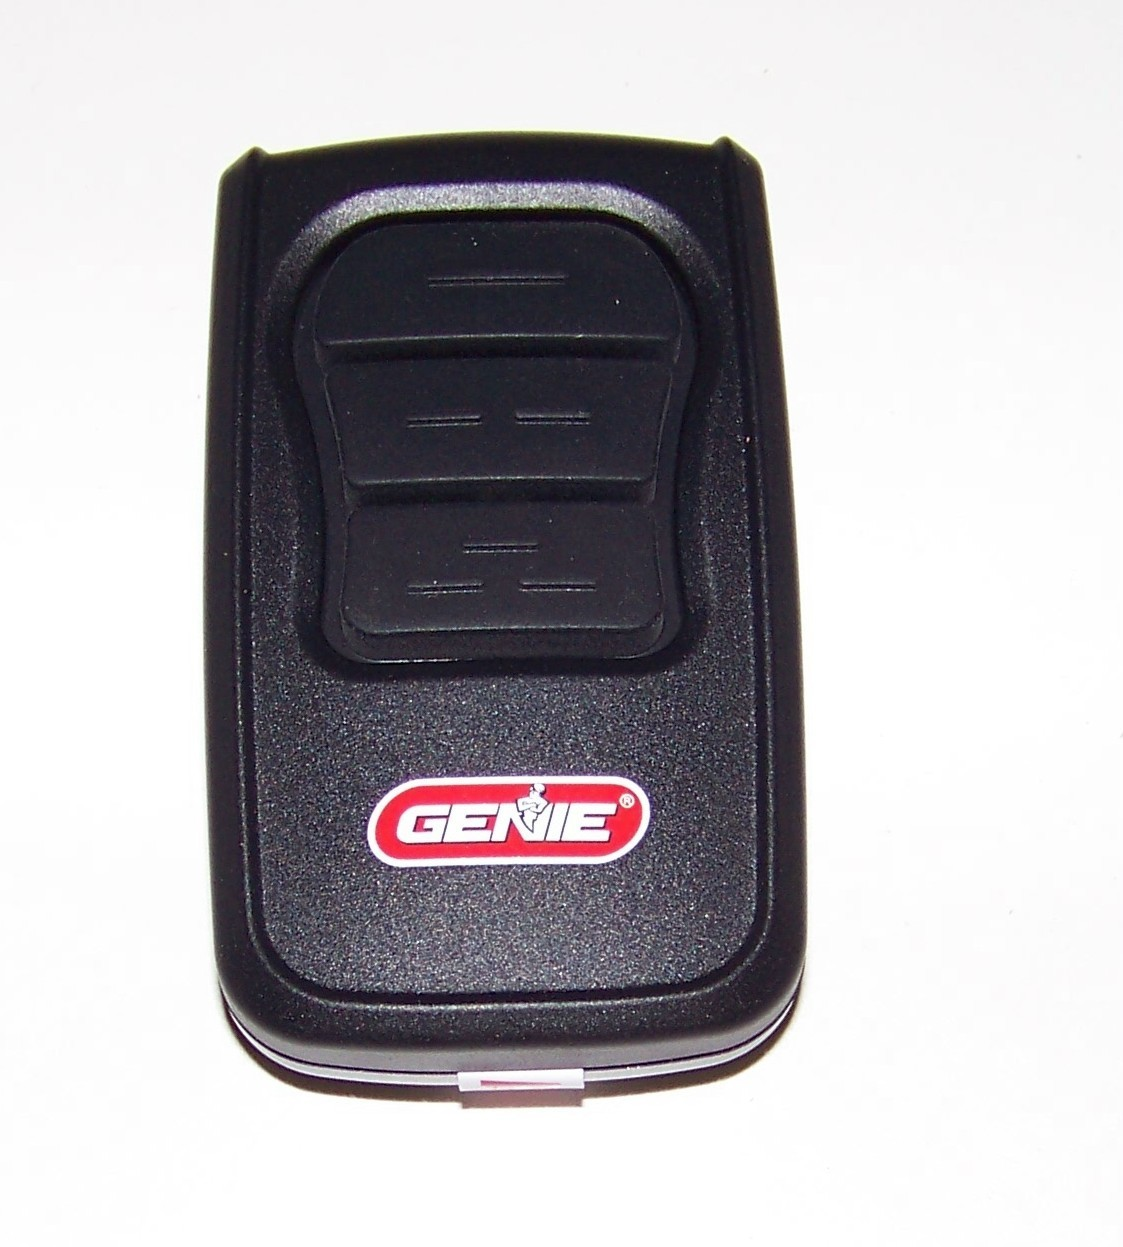 Garage Door Opener Remote Genie Garage Door Opener Remote Gm3t Bx